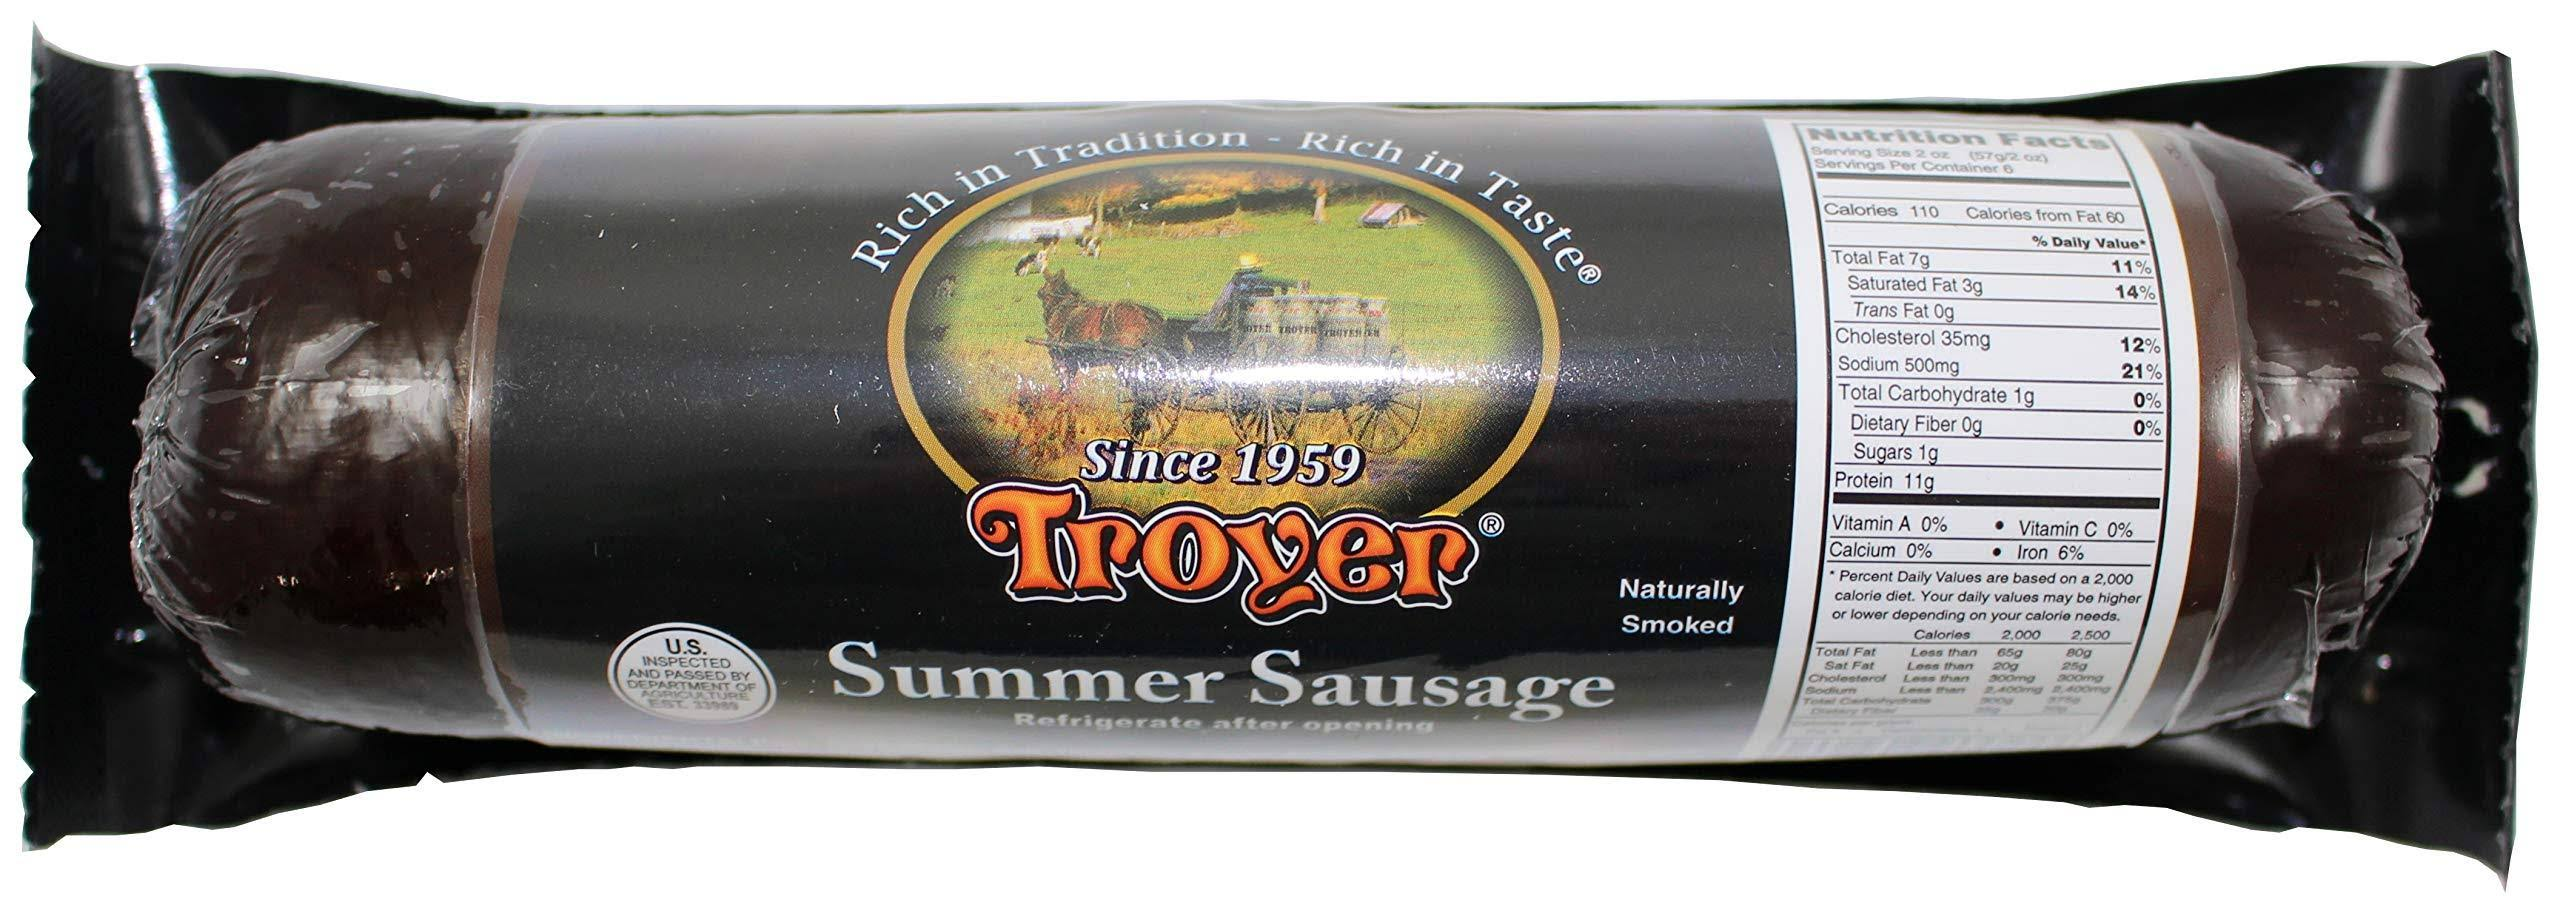 Troyer Summer Sausage Naturally Smoked 12 oz